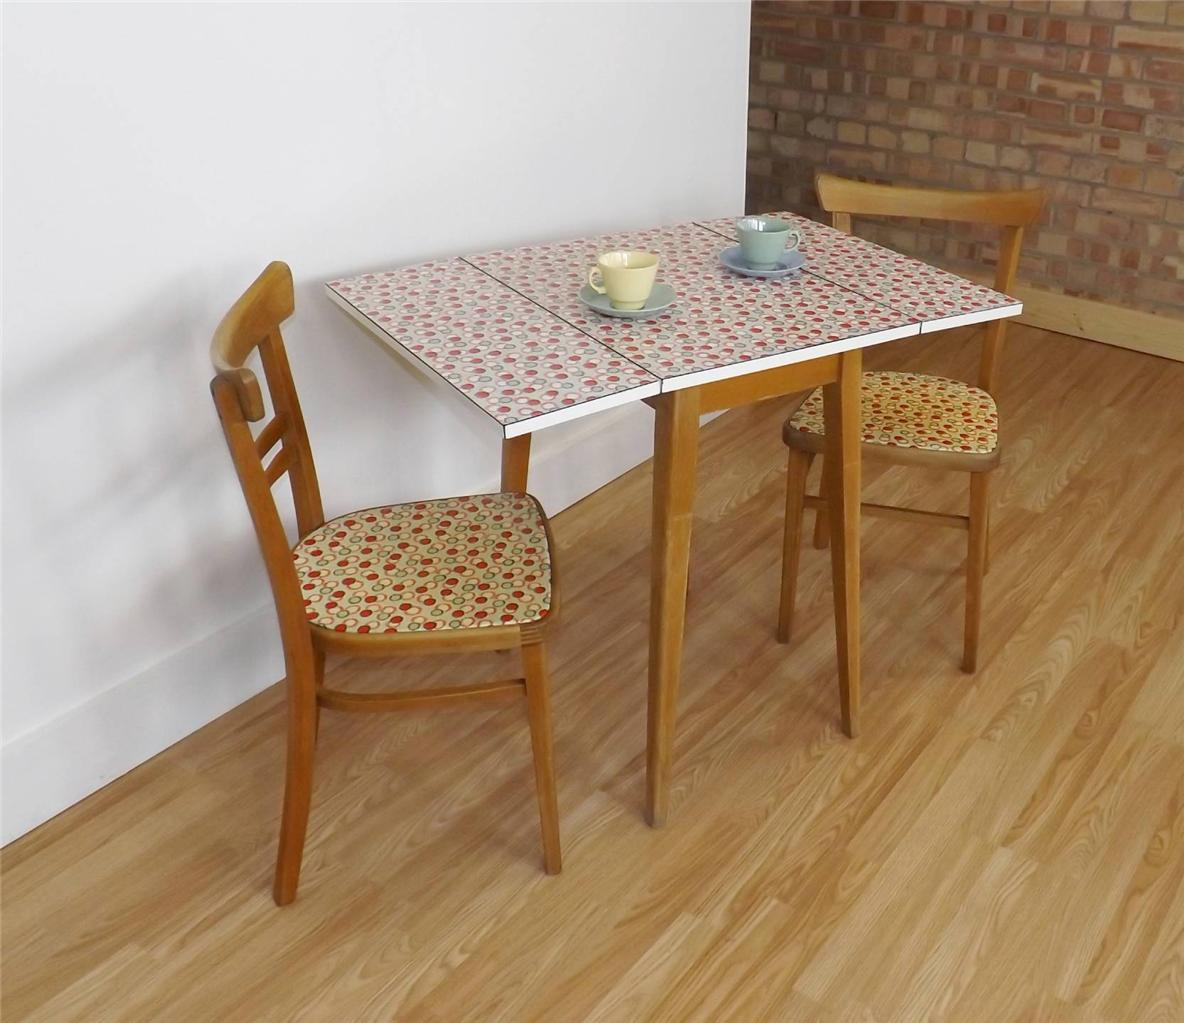 Formica Table And Chairs 1950 39s Formica Kitchen Table And Matching Chairs Retro